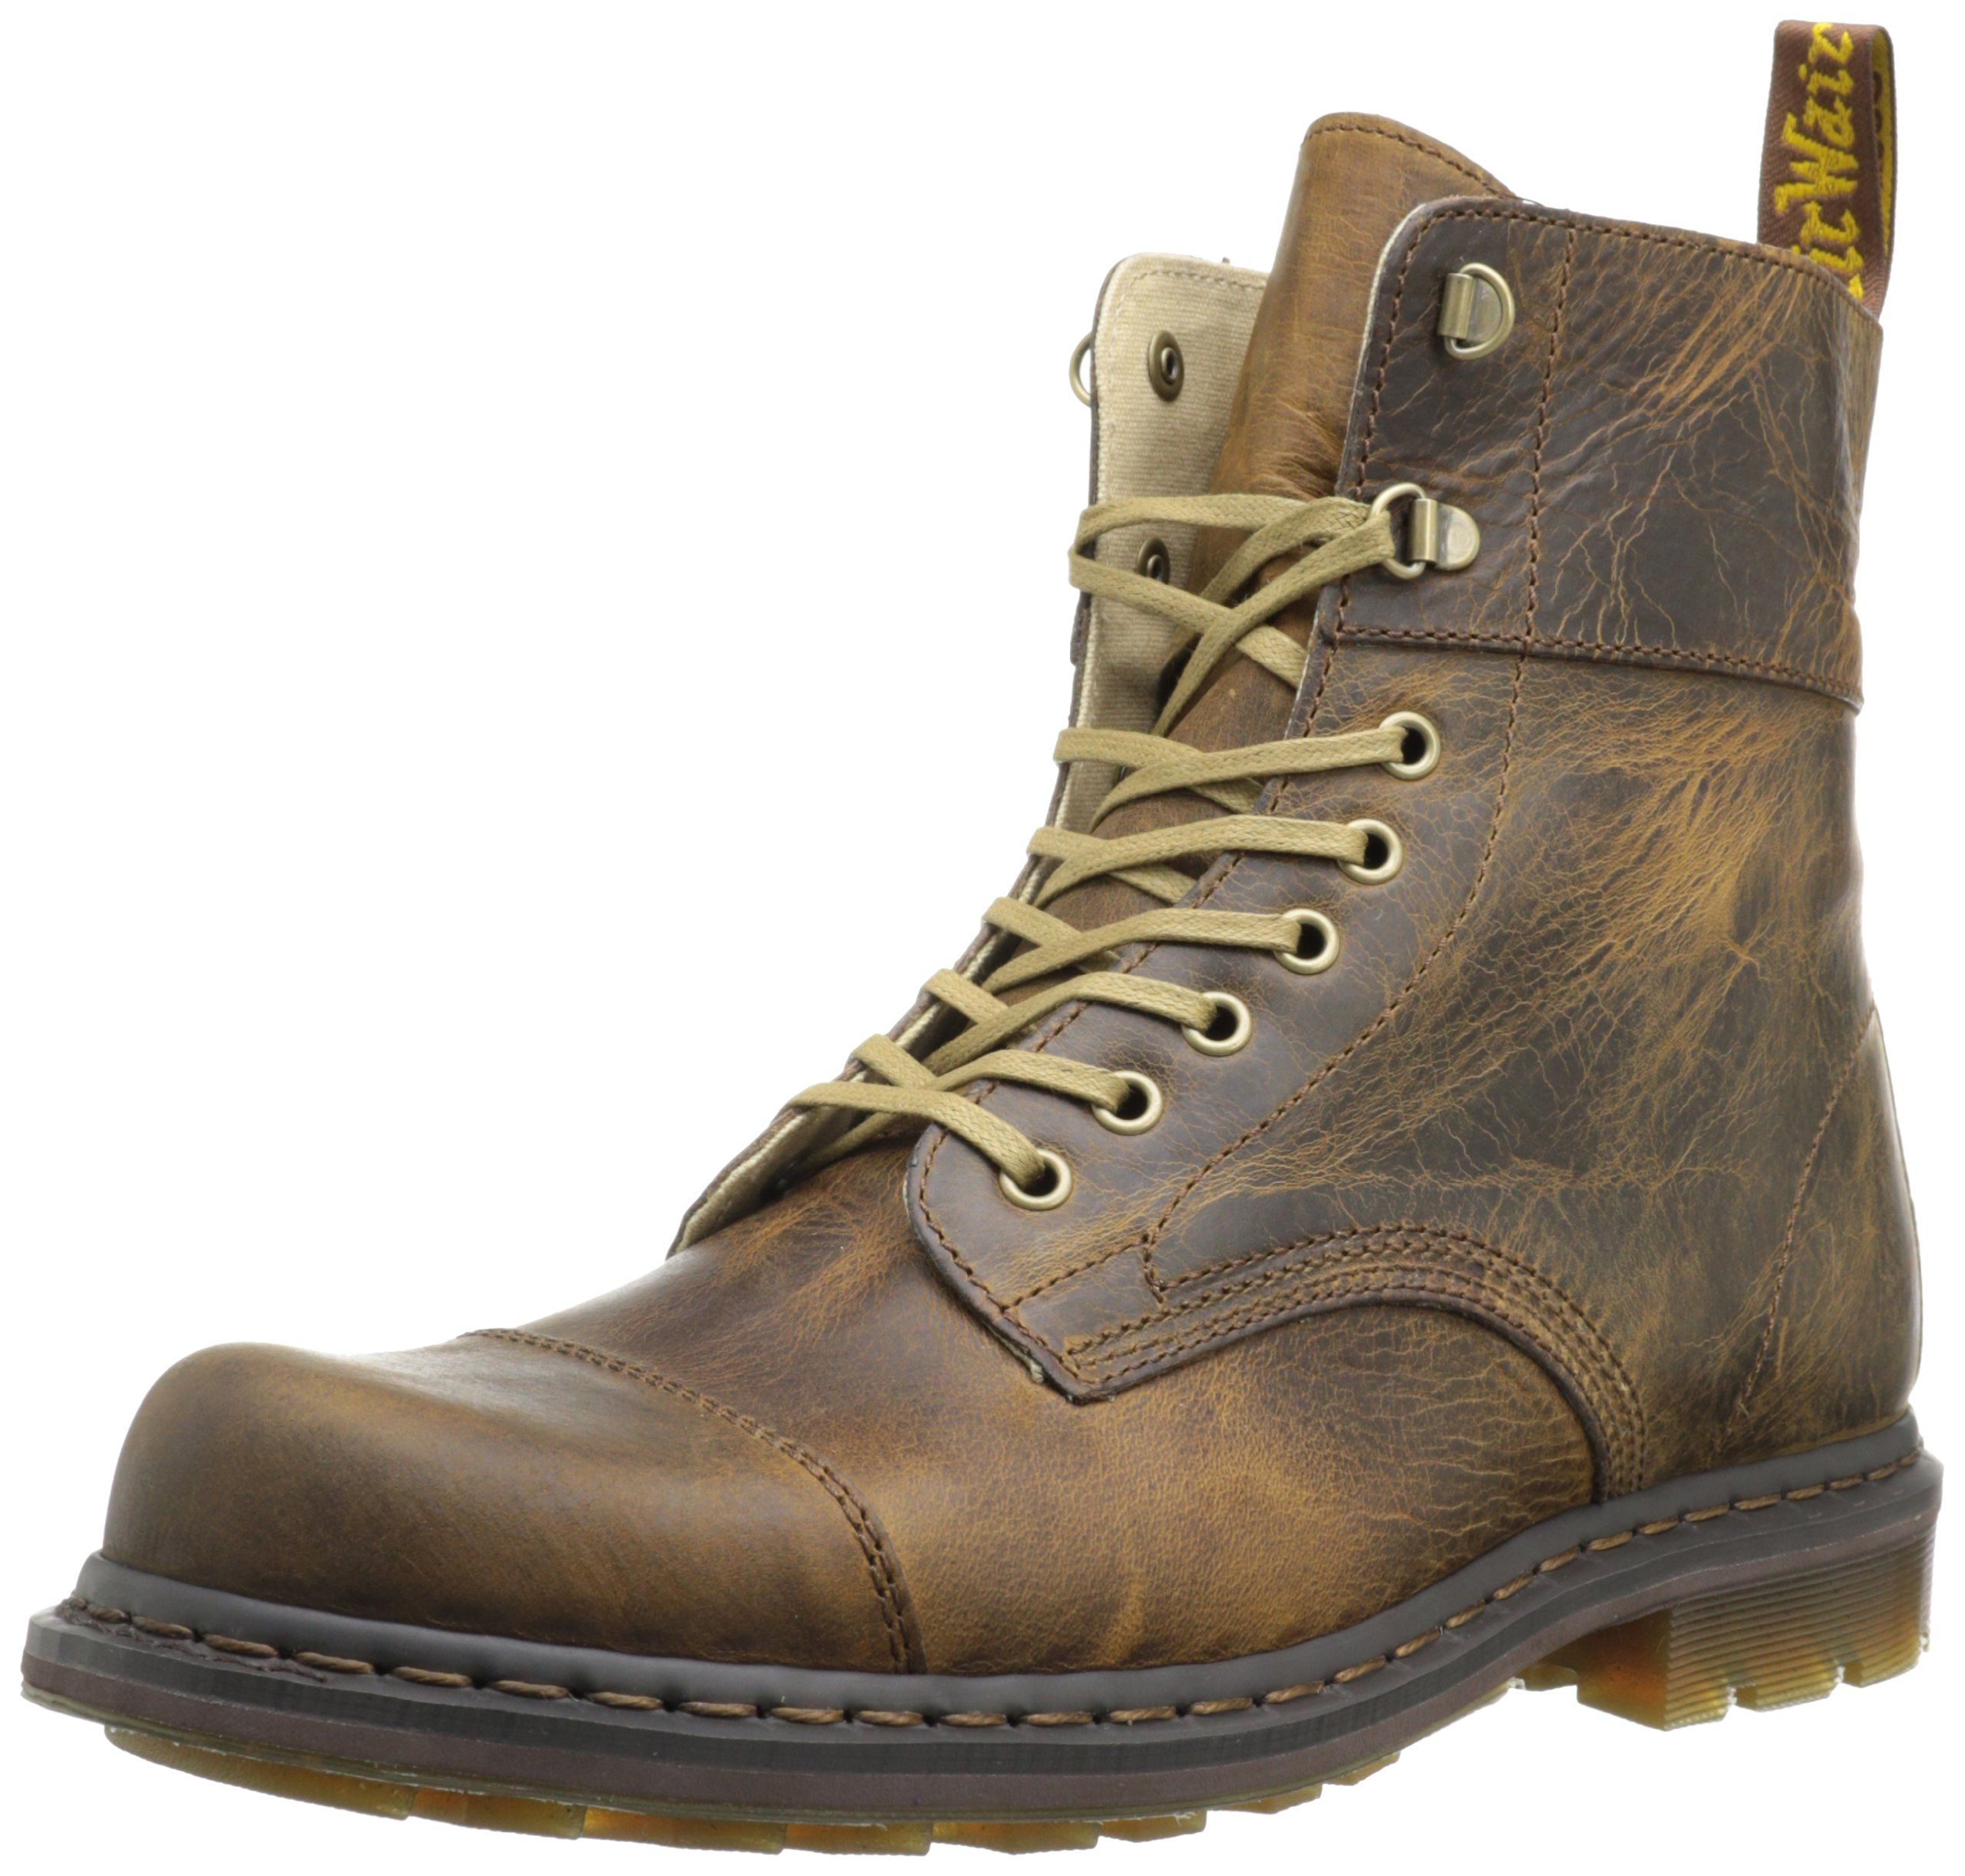 d97697c54dea8 Dr. Martens Men's Gideon Boot | Amazon.com | Style in 2019 | Mens ...